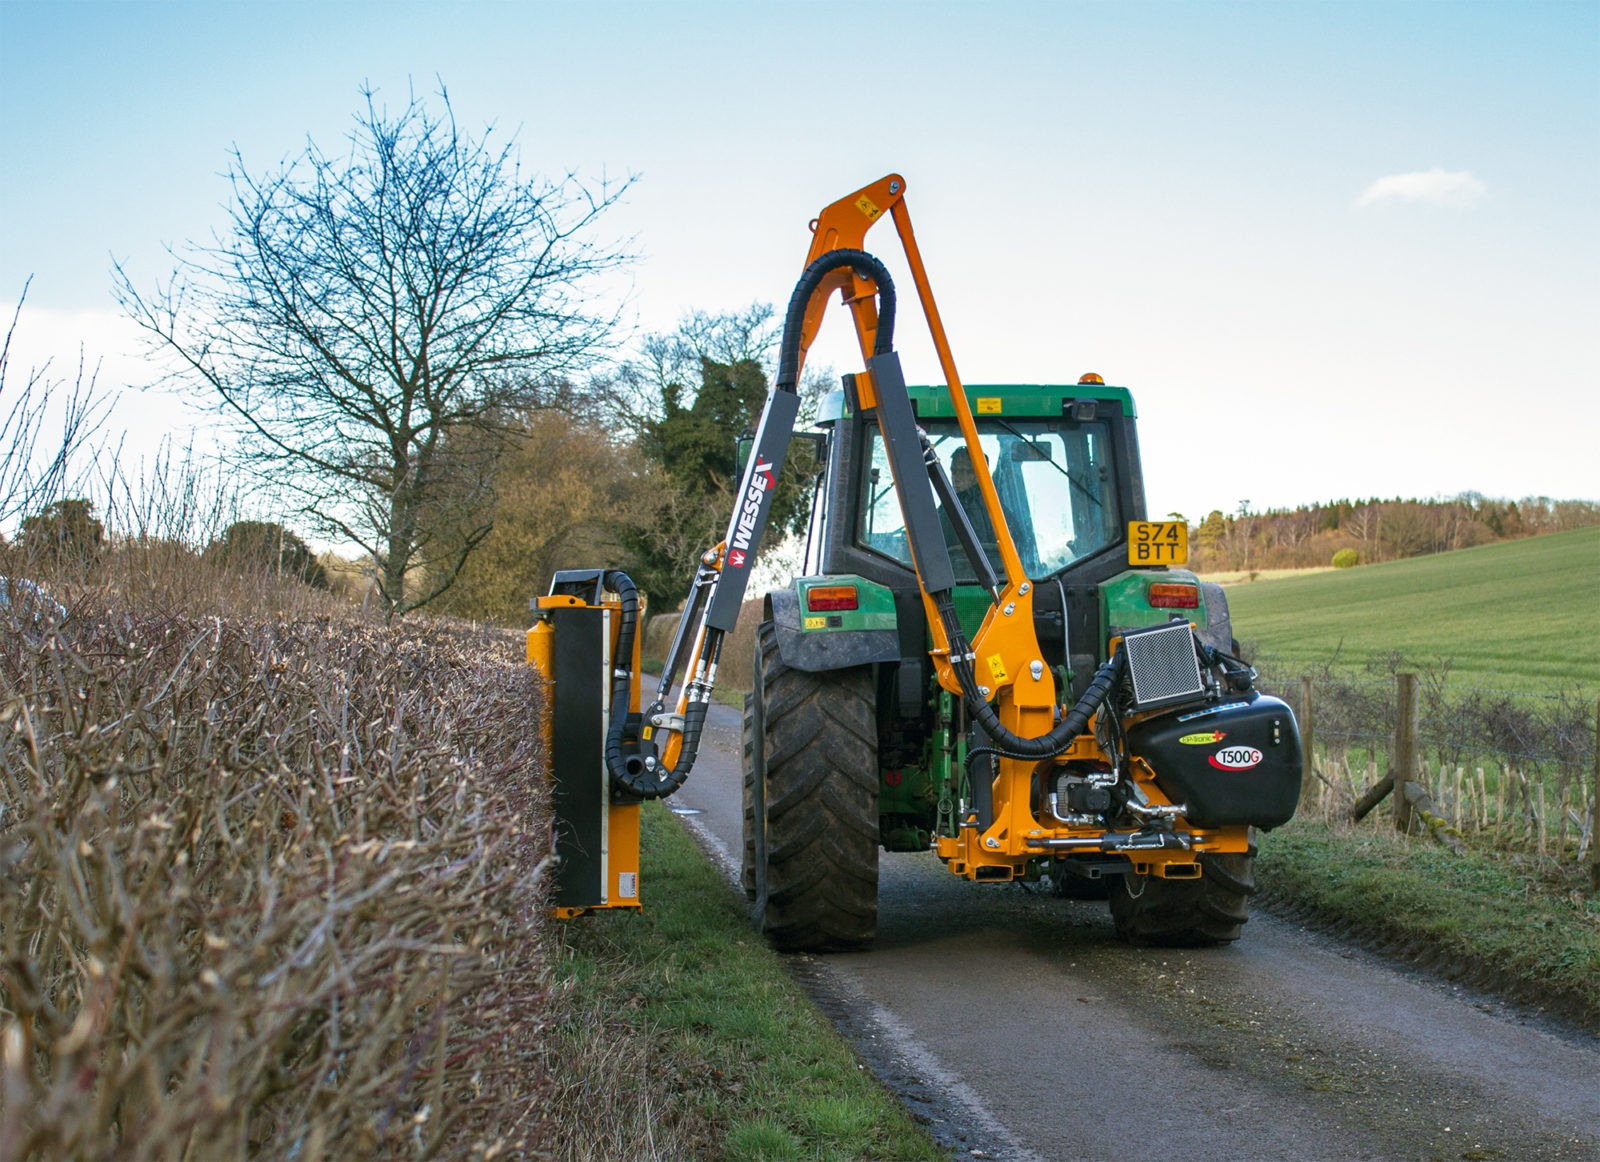 T500 g working 1 - professional groundcare & agricultural equipment